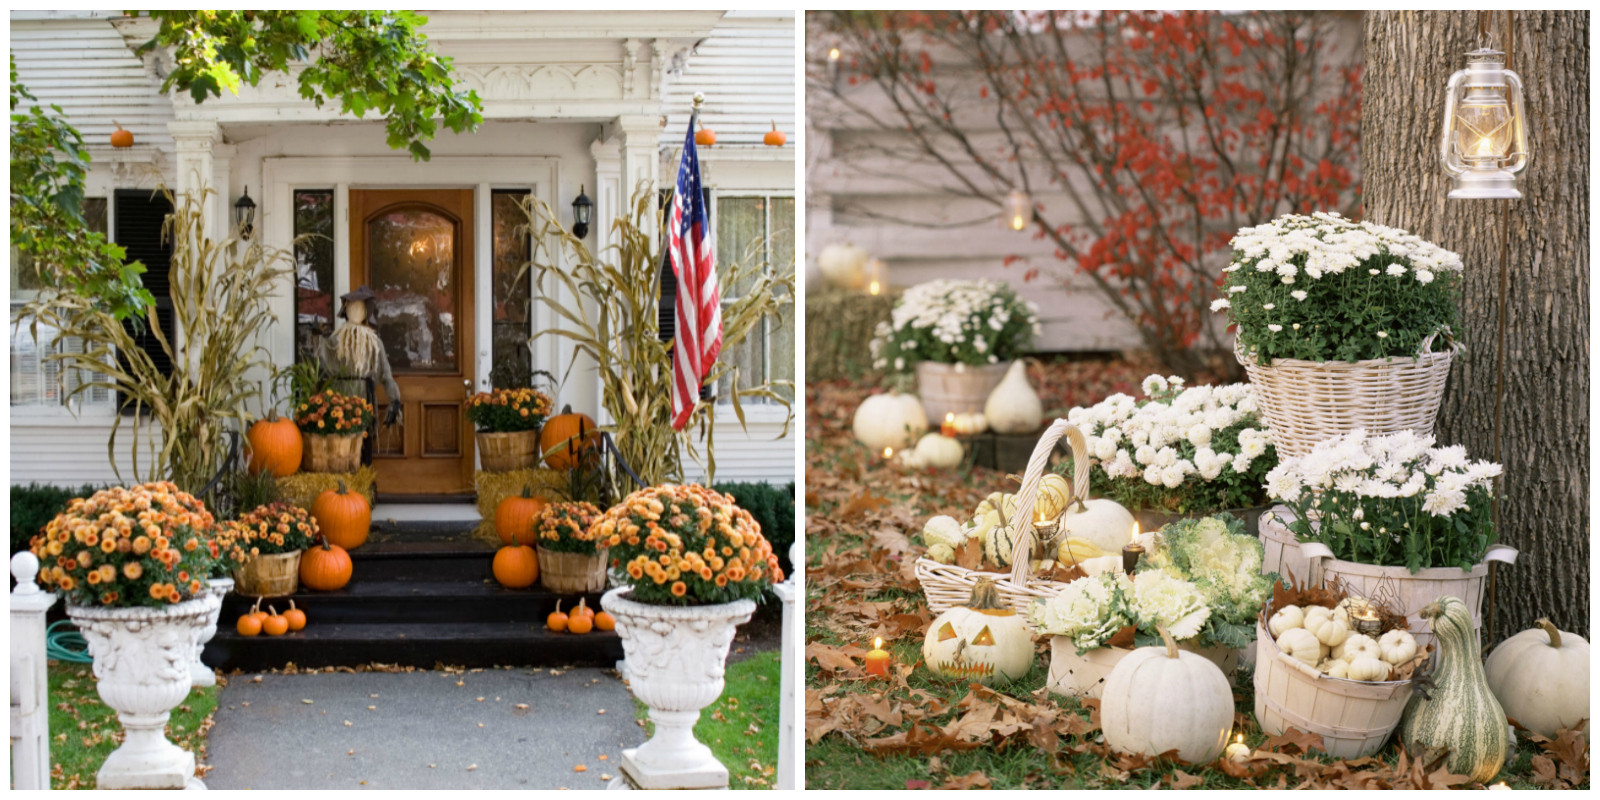 Porch Decorated For Halloween  25 Outdoor Halloween Decorations Porch Decorating Ideas